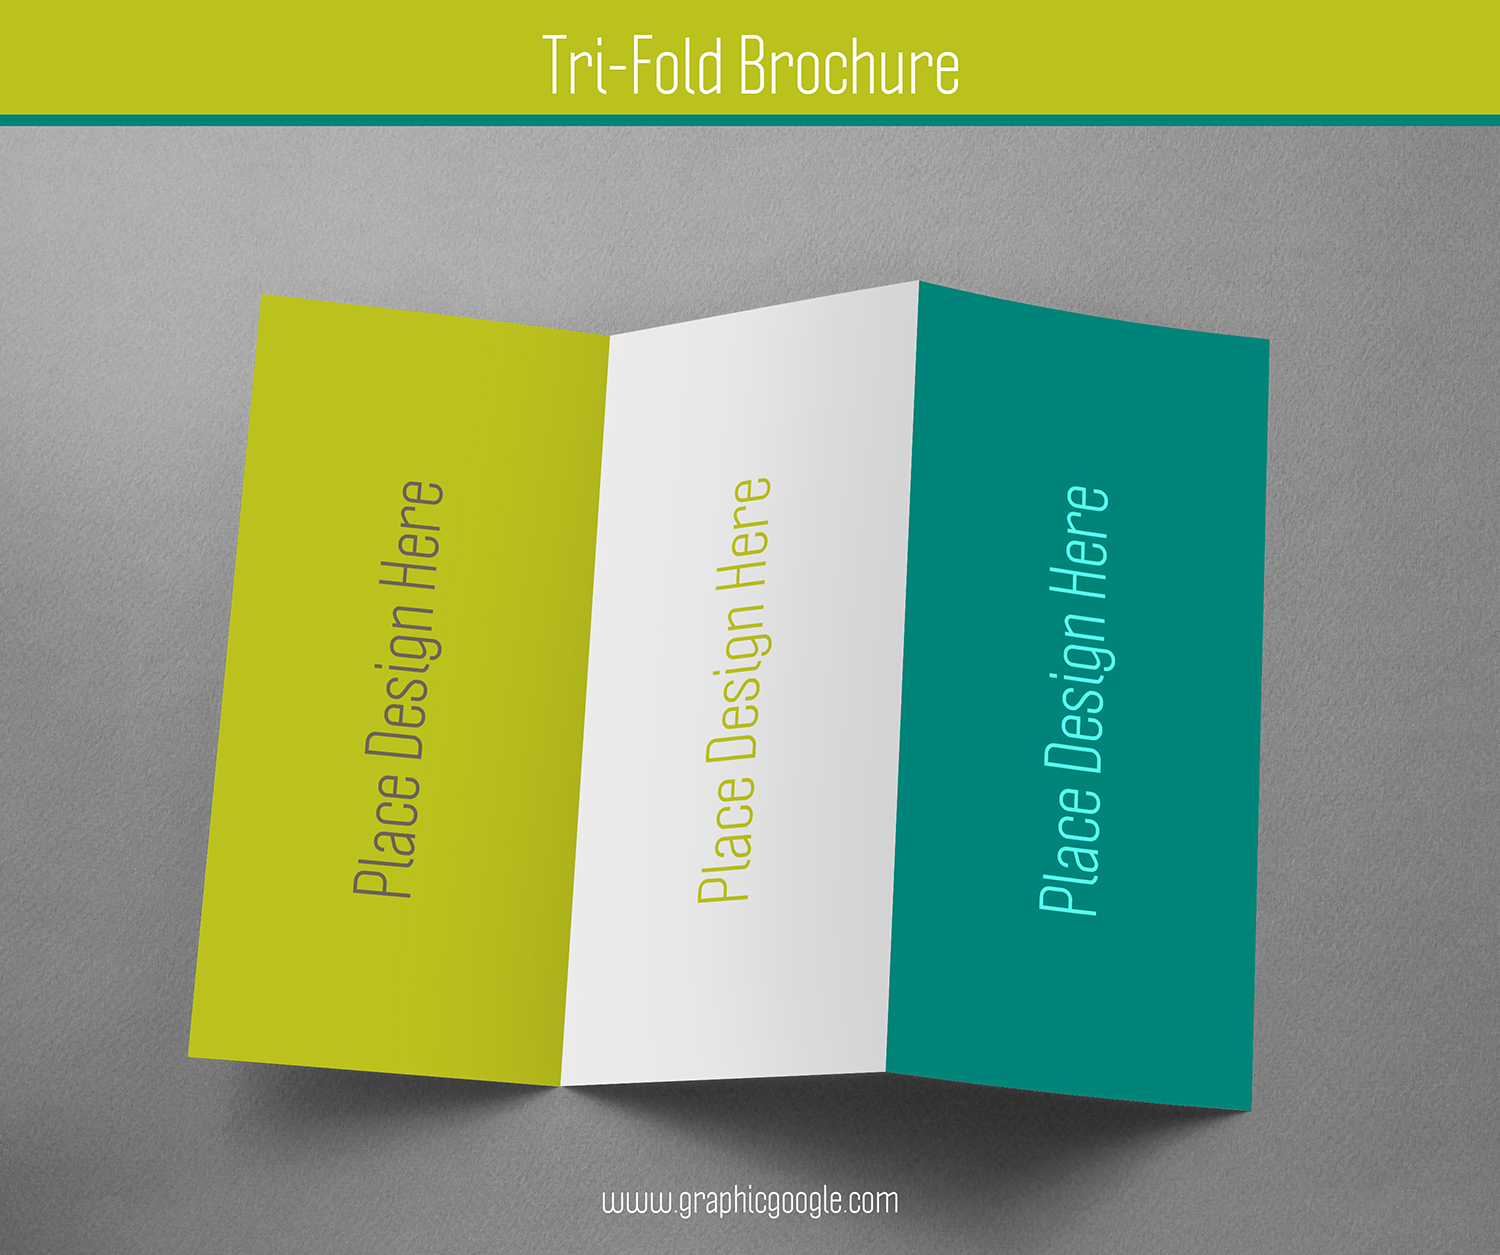 Free Tri-Fold Brochure Mockup For Graphic Designers-2